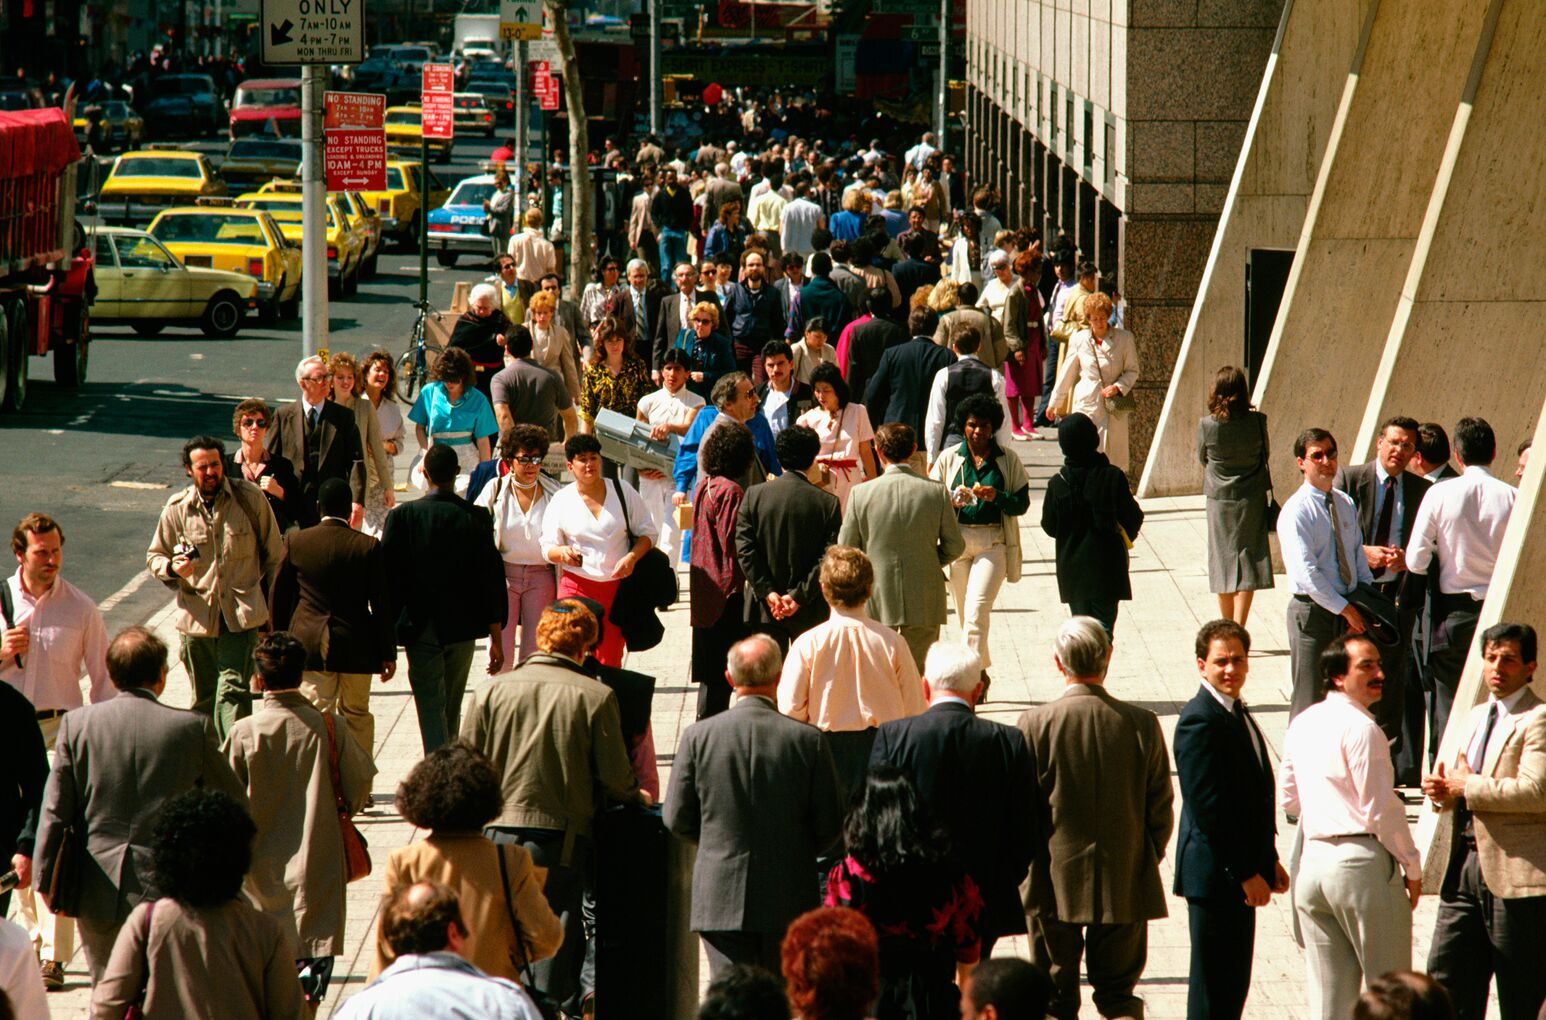 A population of people walk on a busy city street